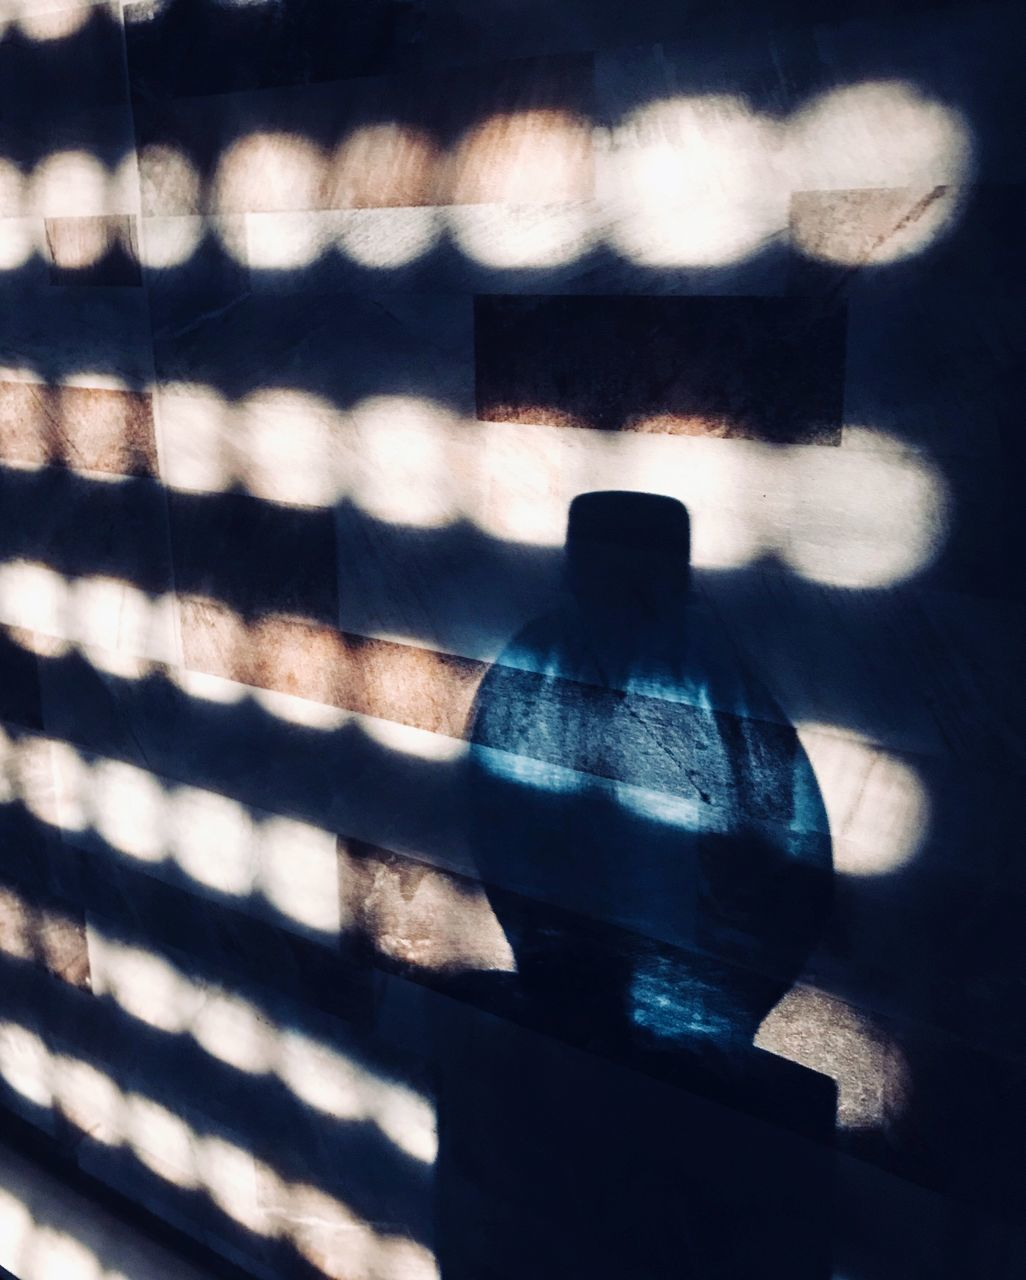 shadow, sunlight, pattern, high angle view, no people, nature, day, indoors, full frame, close-up, window, striped, focus on shadow, backgrounds, digital composite, falling, wall - building feature